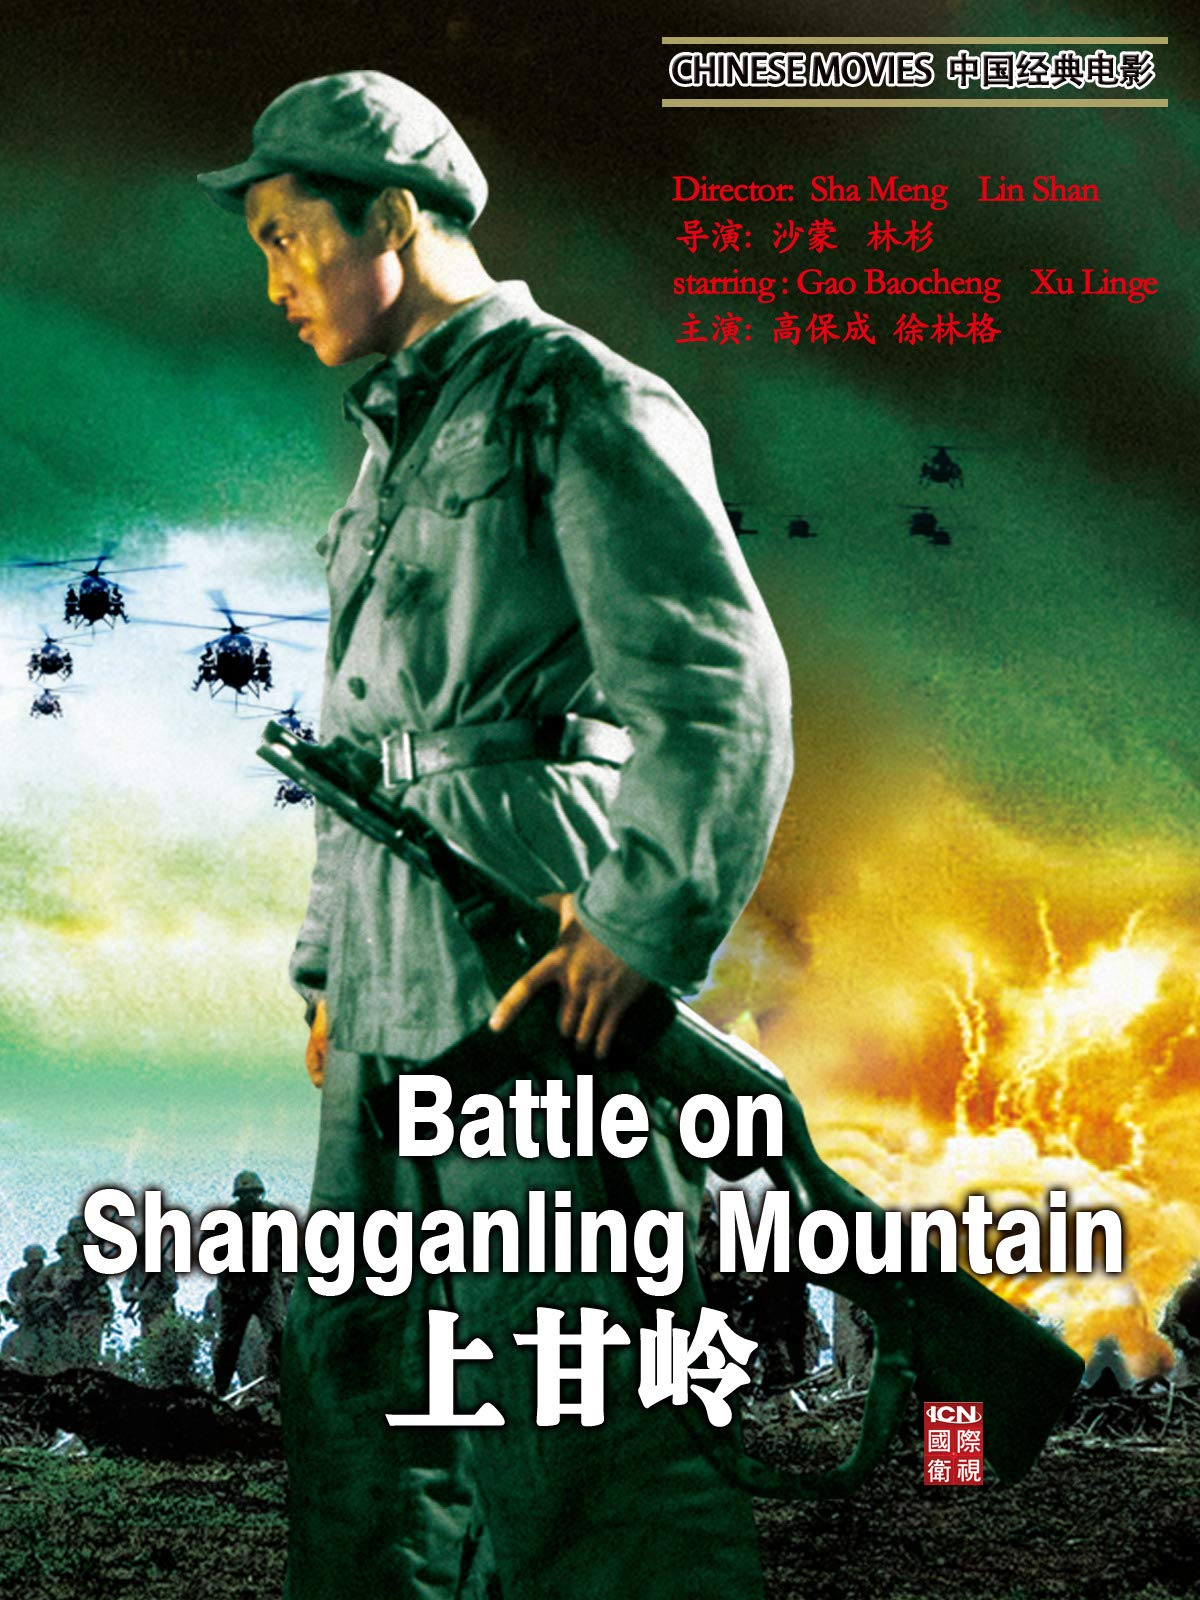 Chinese Movies-Battle on Shangganling Mountain